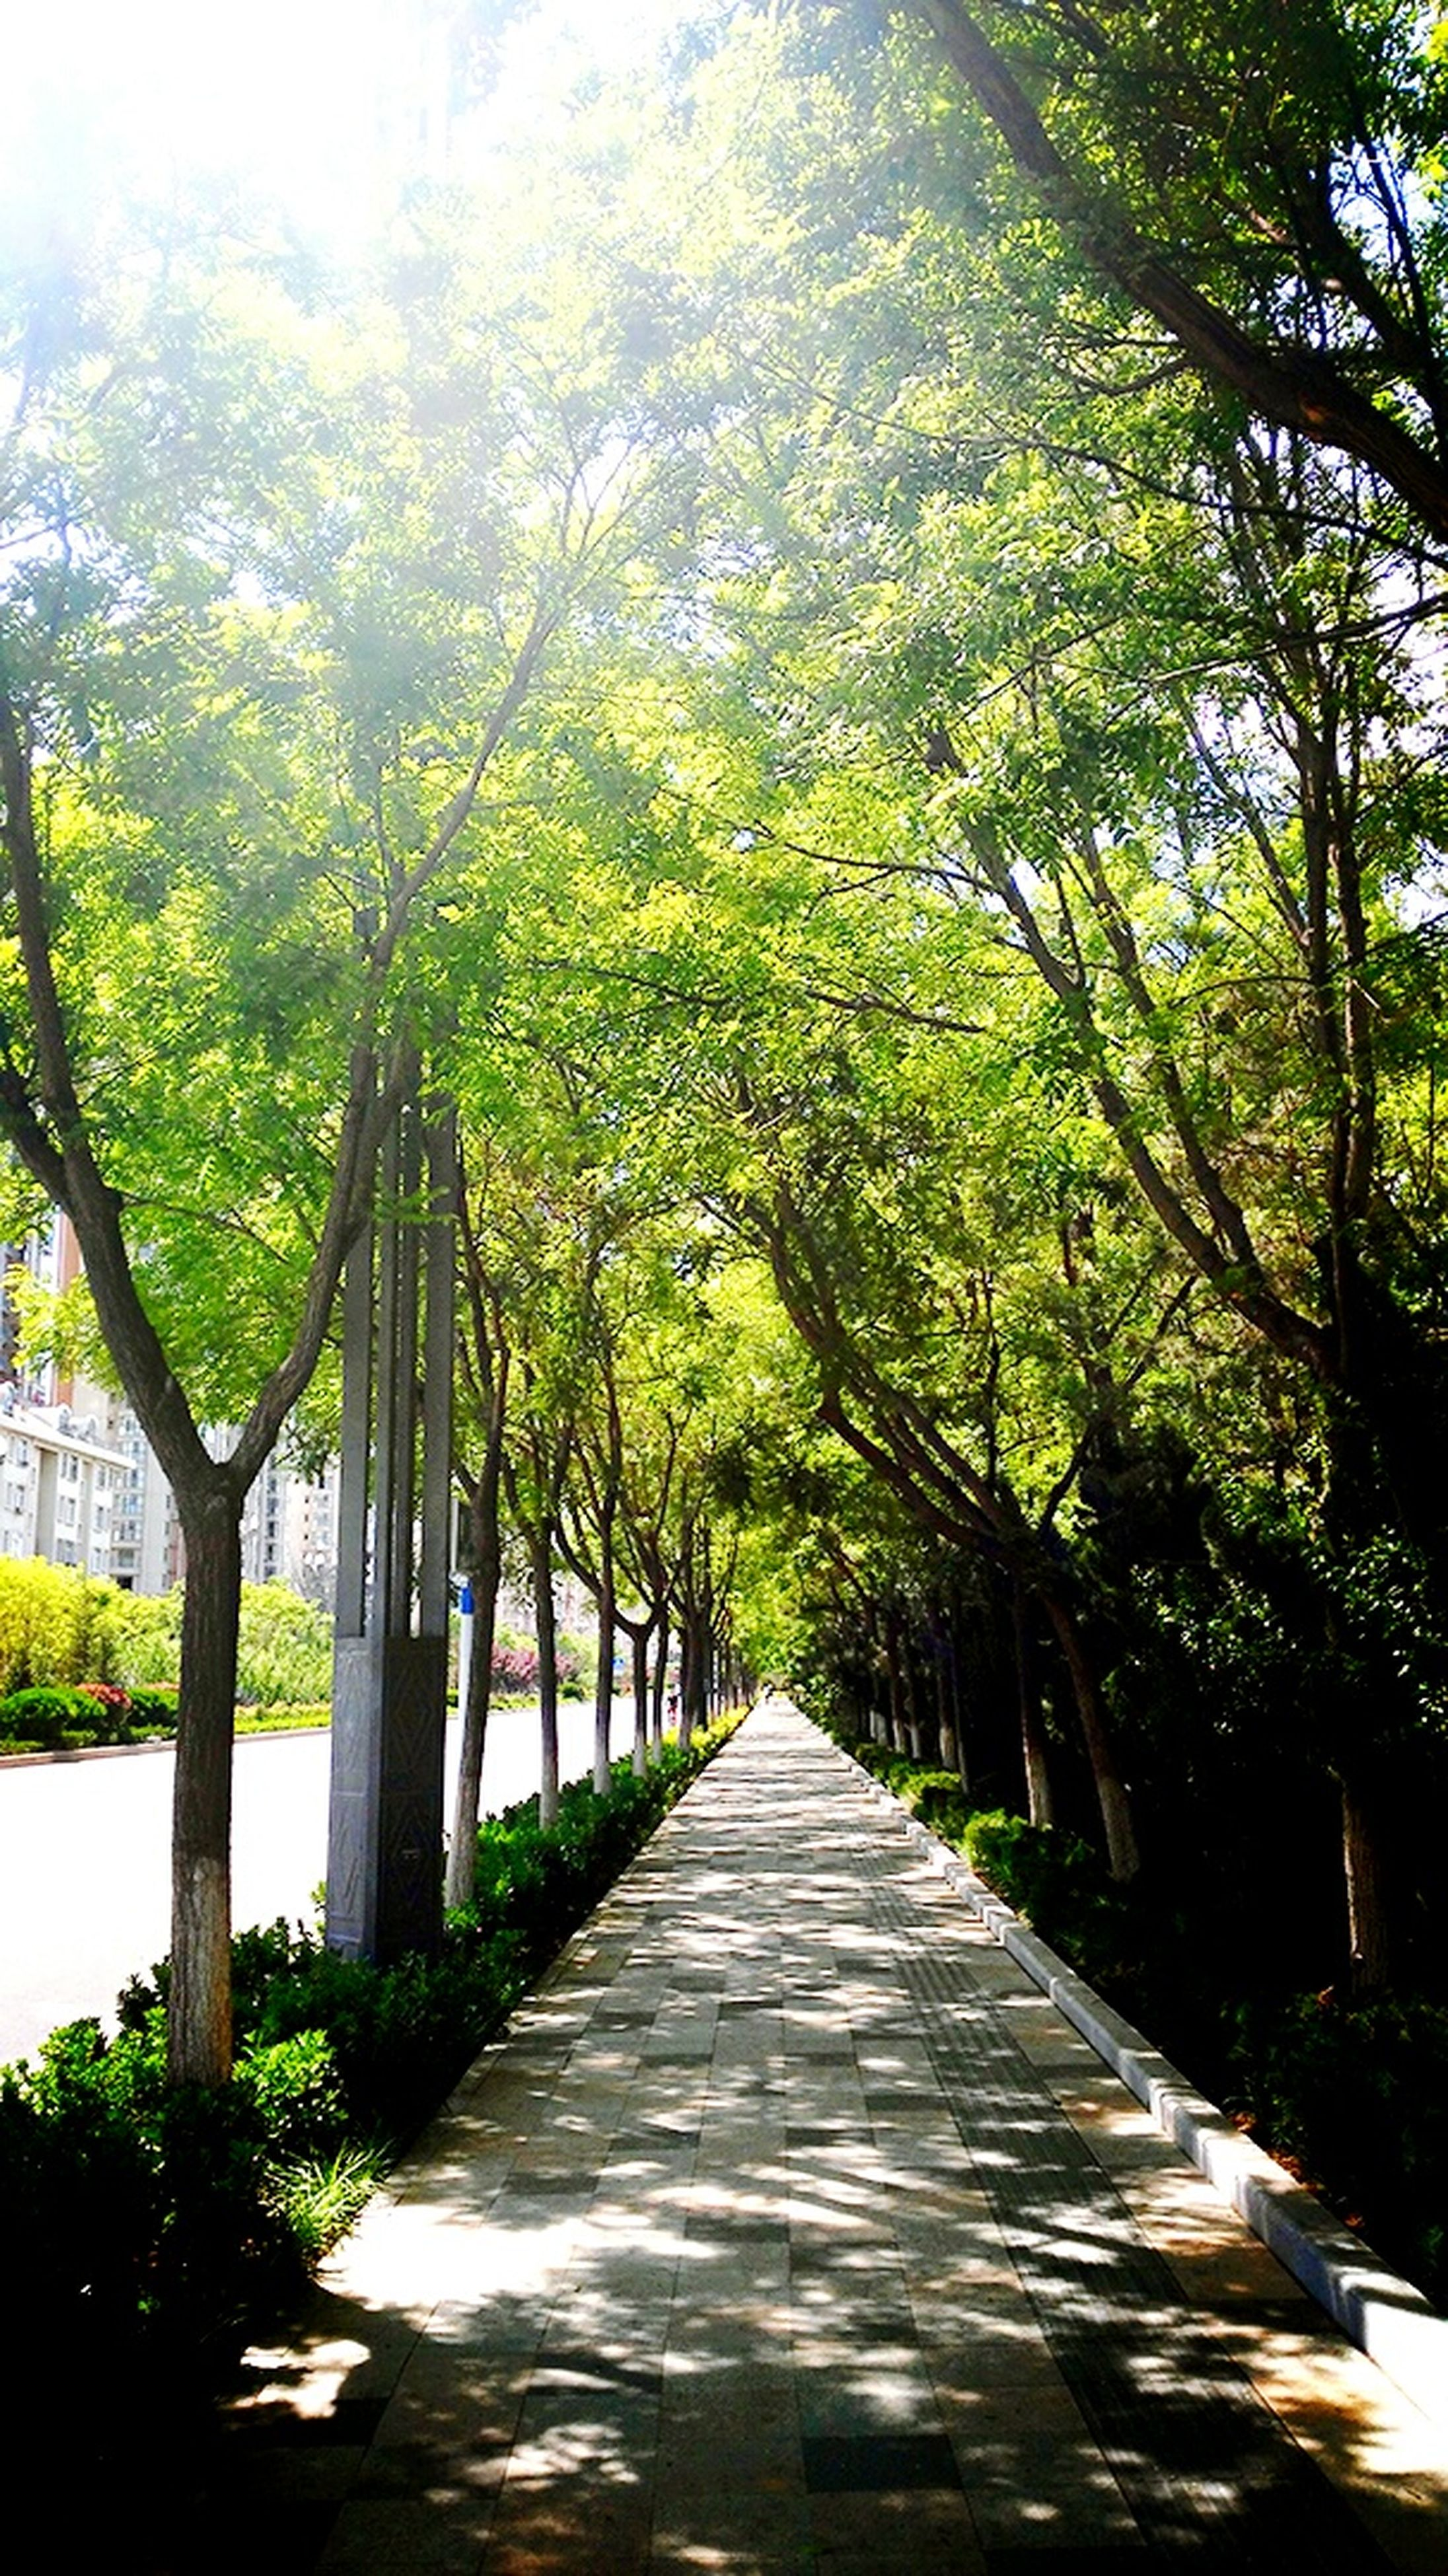 tree, the way forward, diminishing perspective, vanishing point, growth, treelined, branch, footpath, empty, park - man made space, tranquility, sunlight, nature, walkway, tree trunk, railing, transportation, long, green color, day